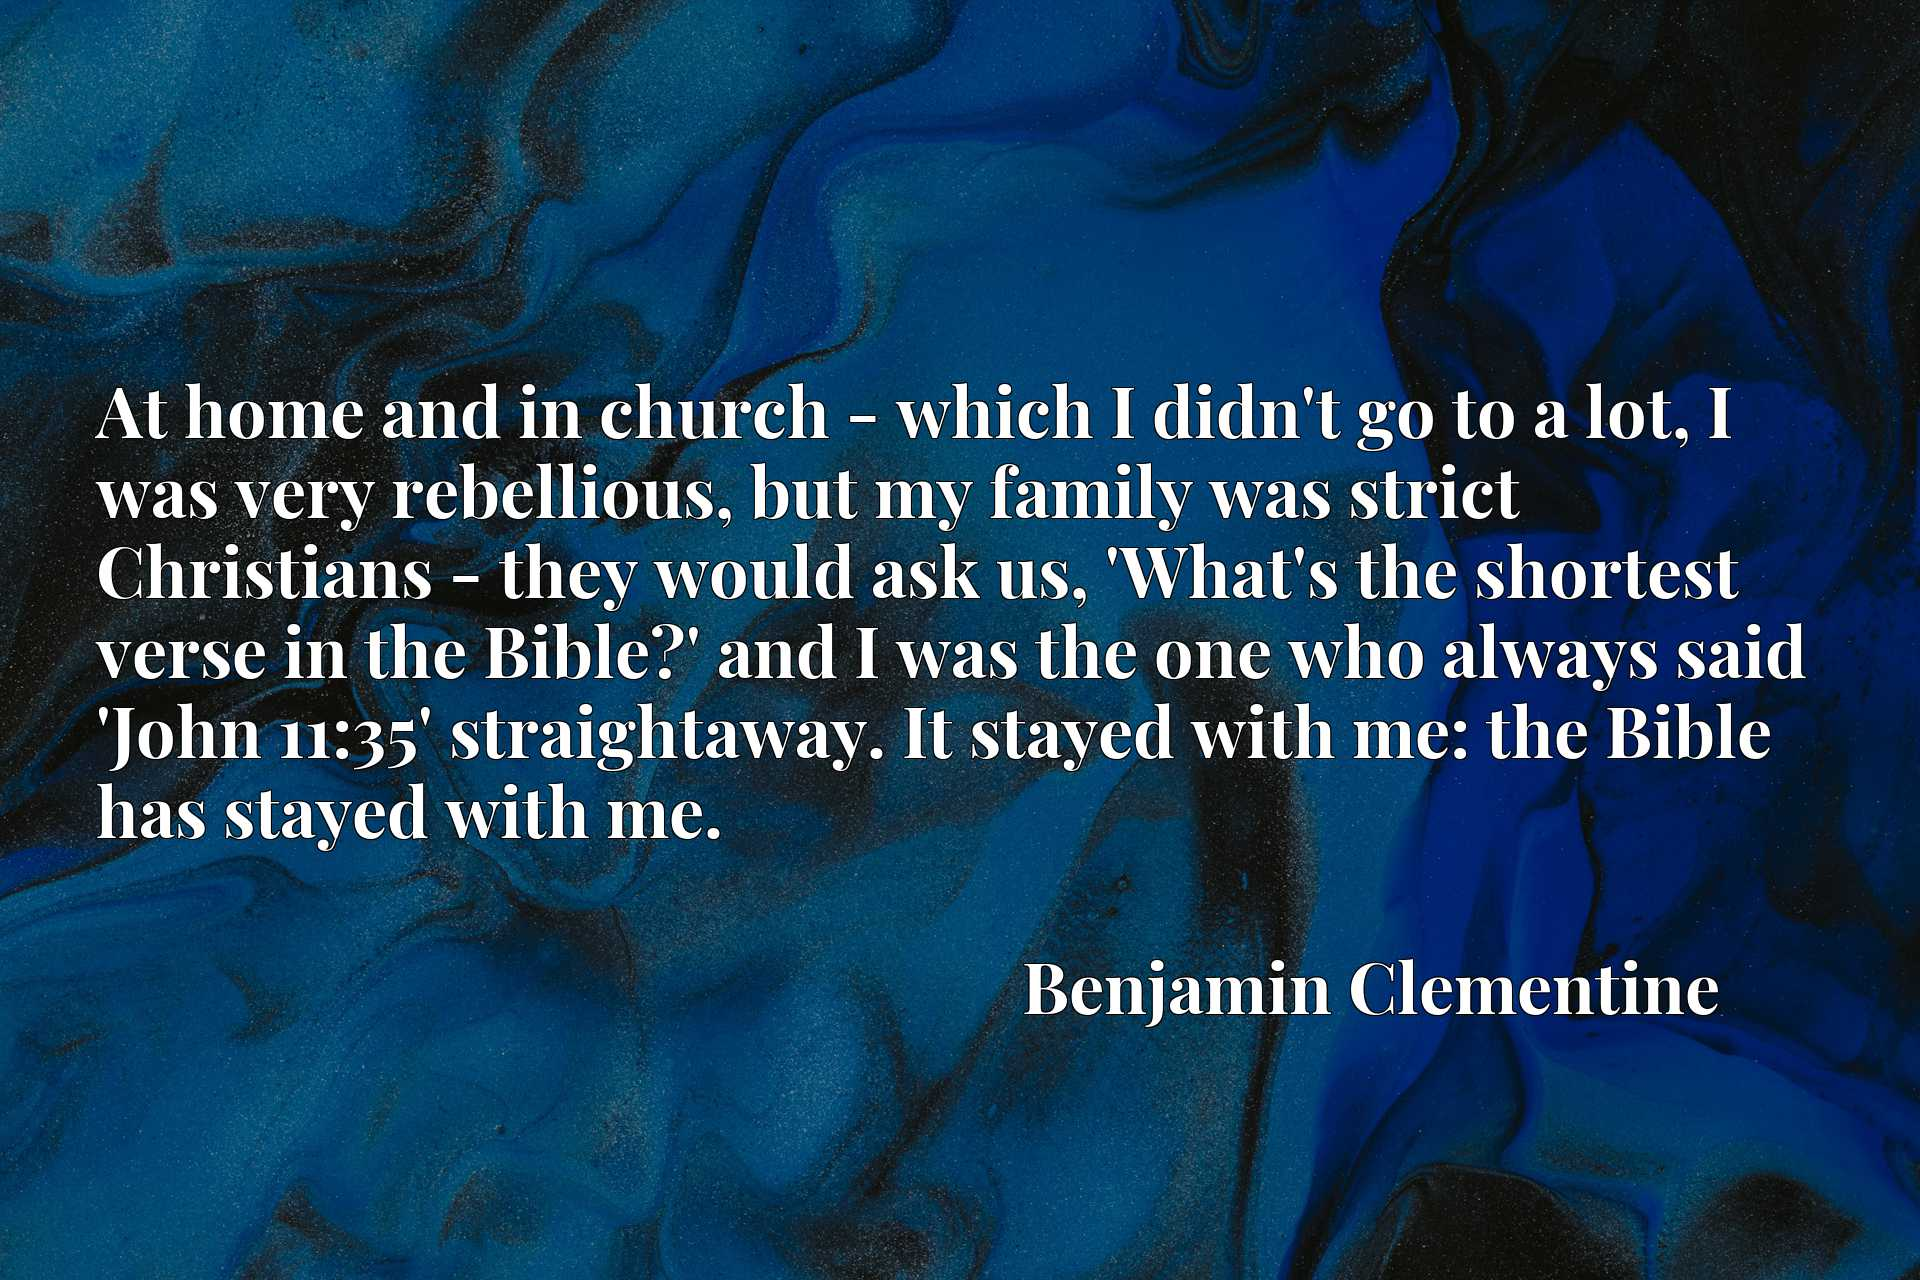 At home and in church - which I didn't go to a lot, I was very rebellious, but my family was strict Christians - they would ask us, 'What's the shortest verse in the Bible?' and I was the one who always said 'John 11:35' straightaway. It stayed with me: the Bible has stayed with me.